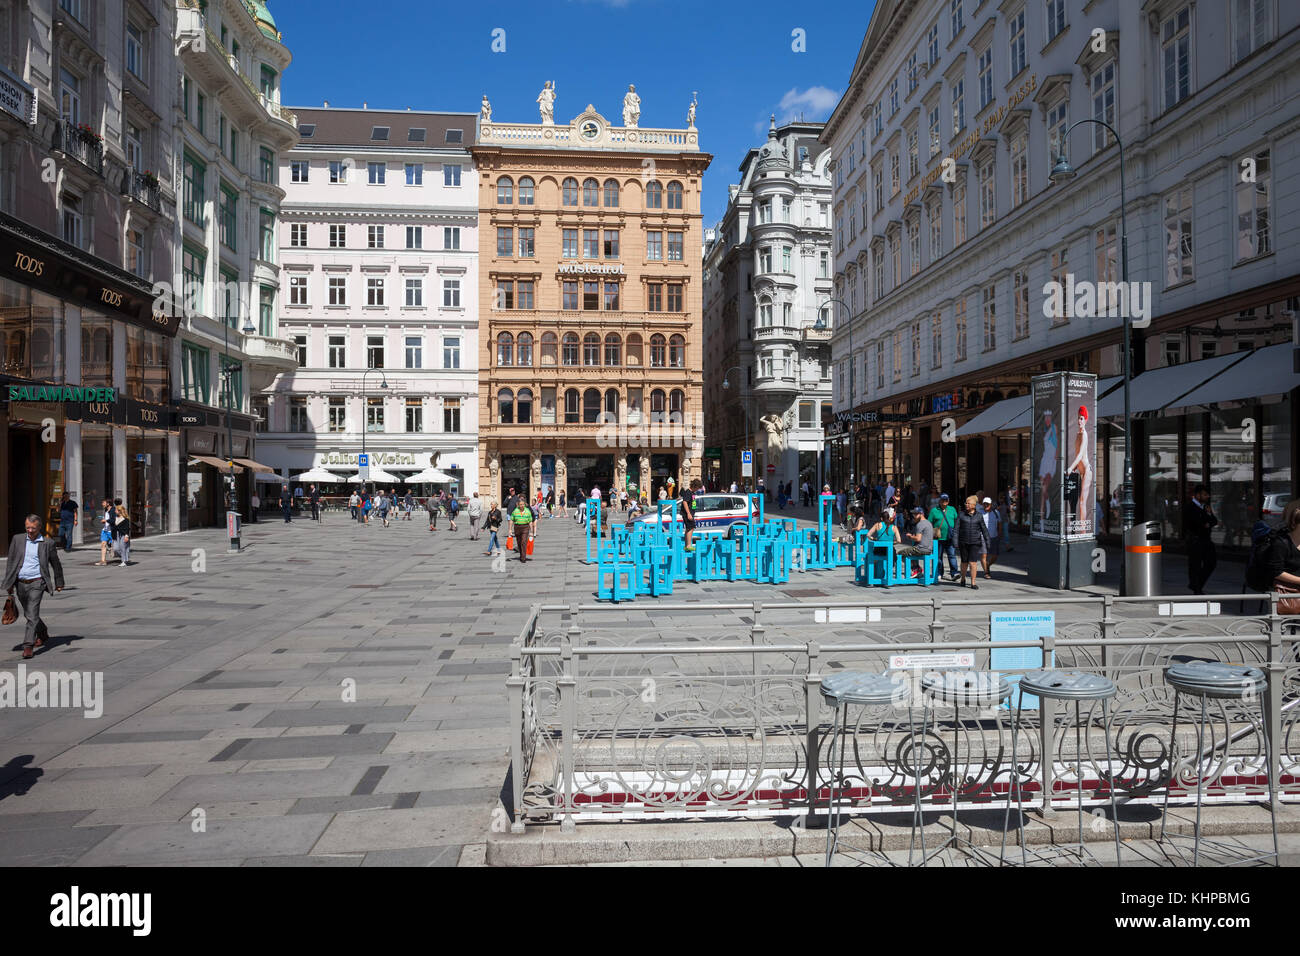 Vienna City Centre Stock Photos & Vienna City Centre Stock ...